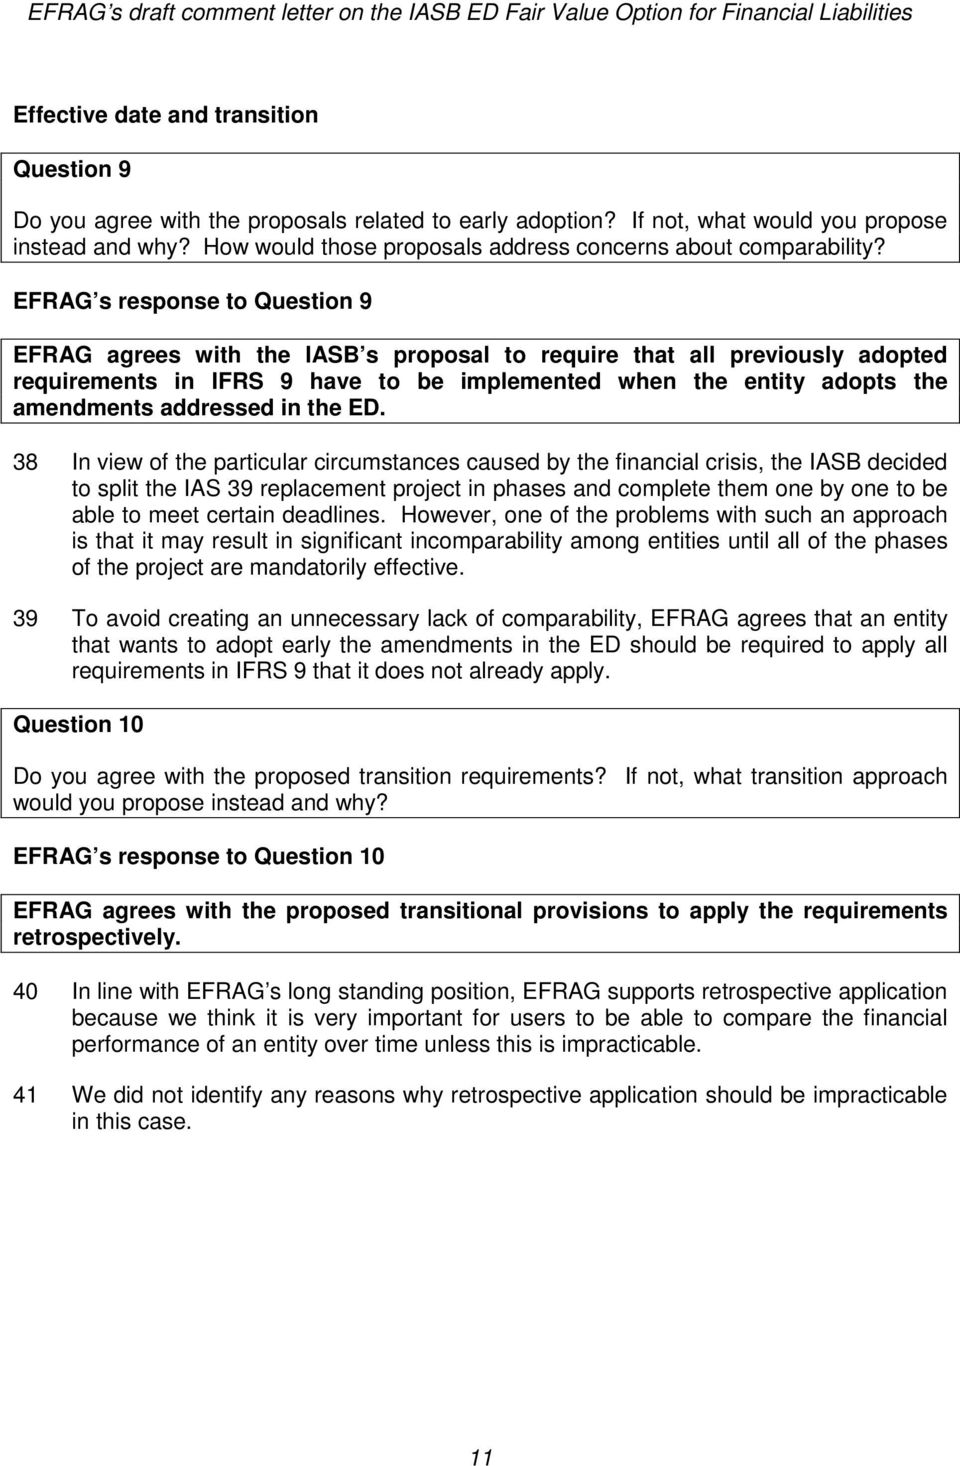 EFRAG s response to Question 9 EFRAG agrees with the IASB s proposal to require that all previously adopted requirements in IFRS 9 have to be implemented when the entity adopts the amendments